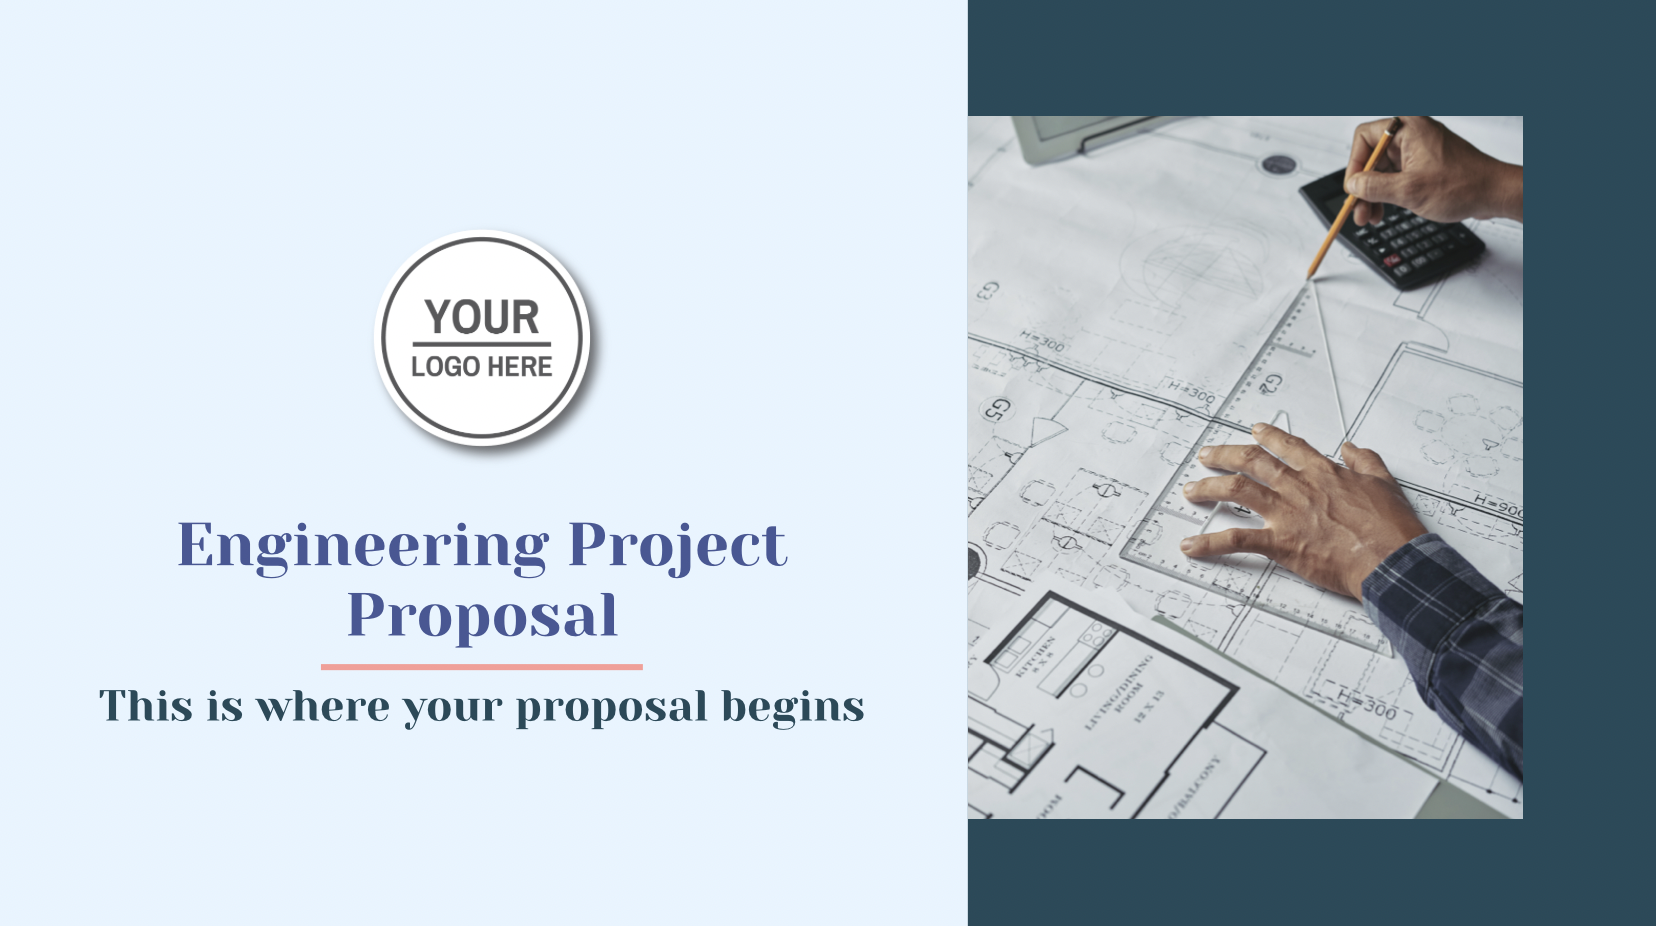 You may demonstrate that your project is worthwhile for the company by writing a clear and engaging project proposal. It improves the comprehension of the project's needs and timetable.